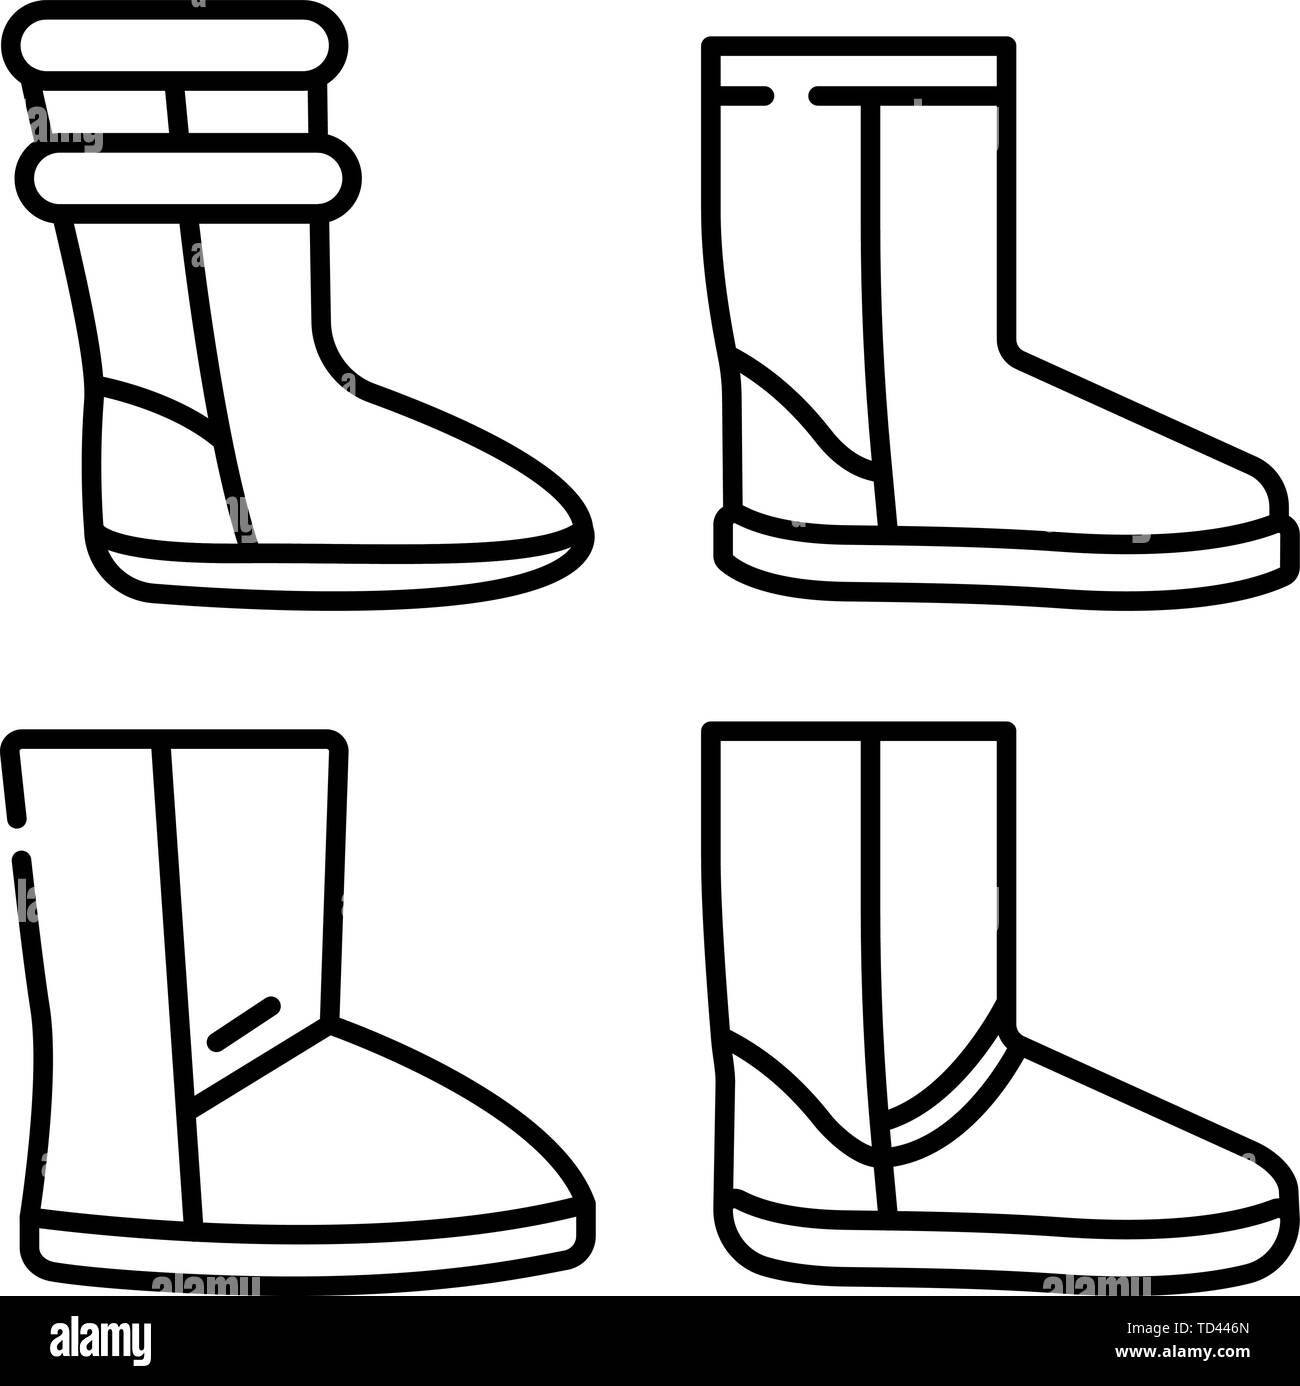 27701e03400 Ugg boots icons set, outline style Stock Vector Art & Illustration ...